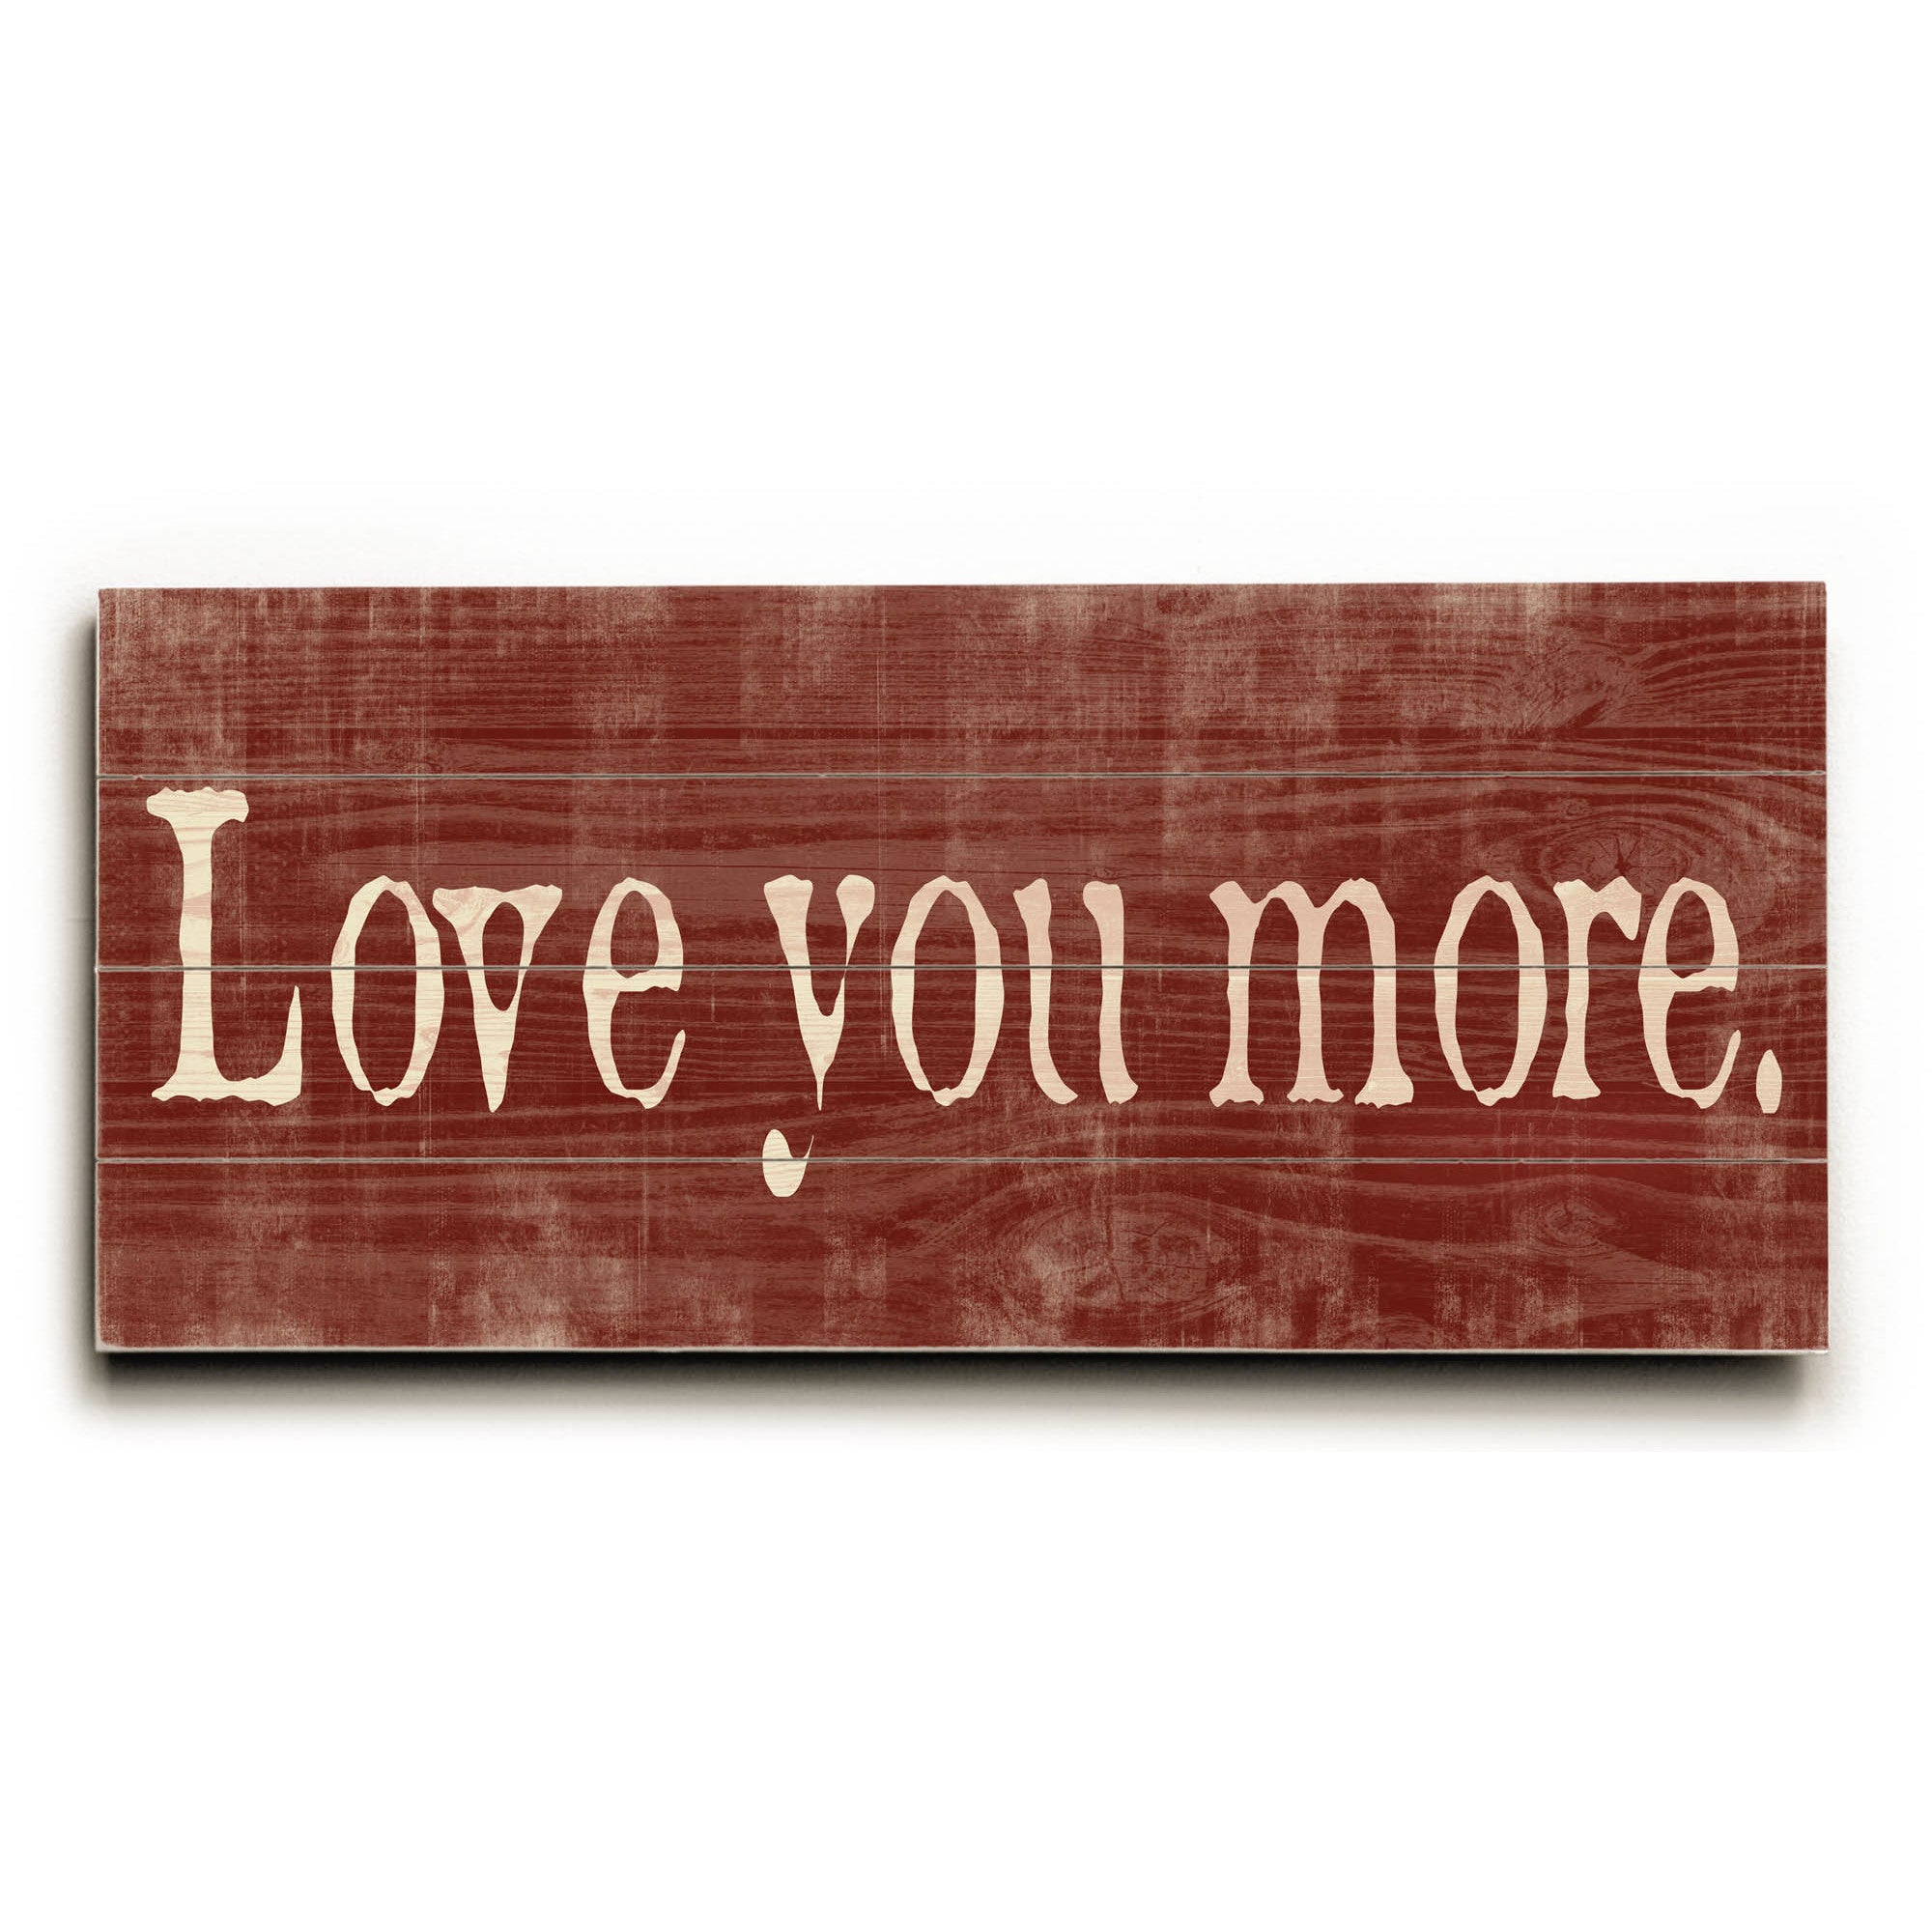 Love You More. - Wood Wall Decormisty Diller within 'Love You More' Wood Wall Decor (Image 28 of 30)